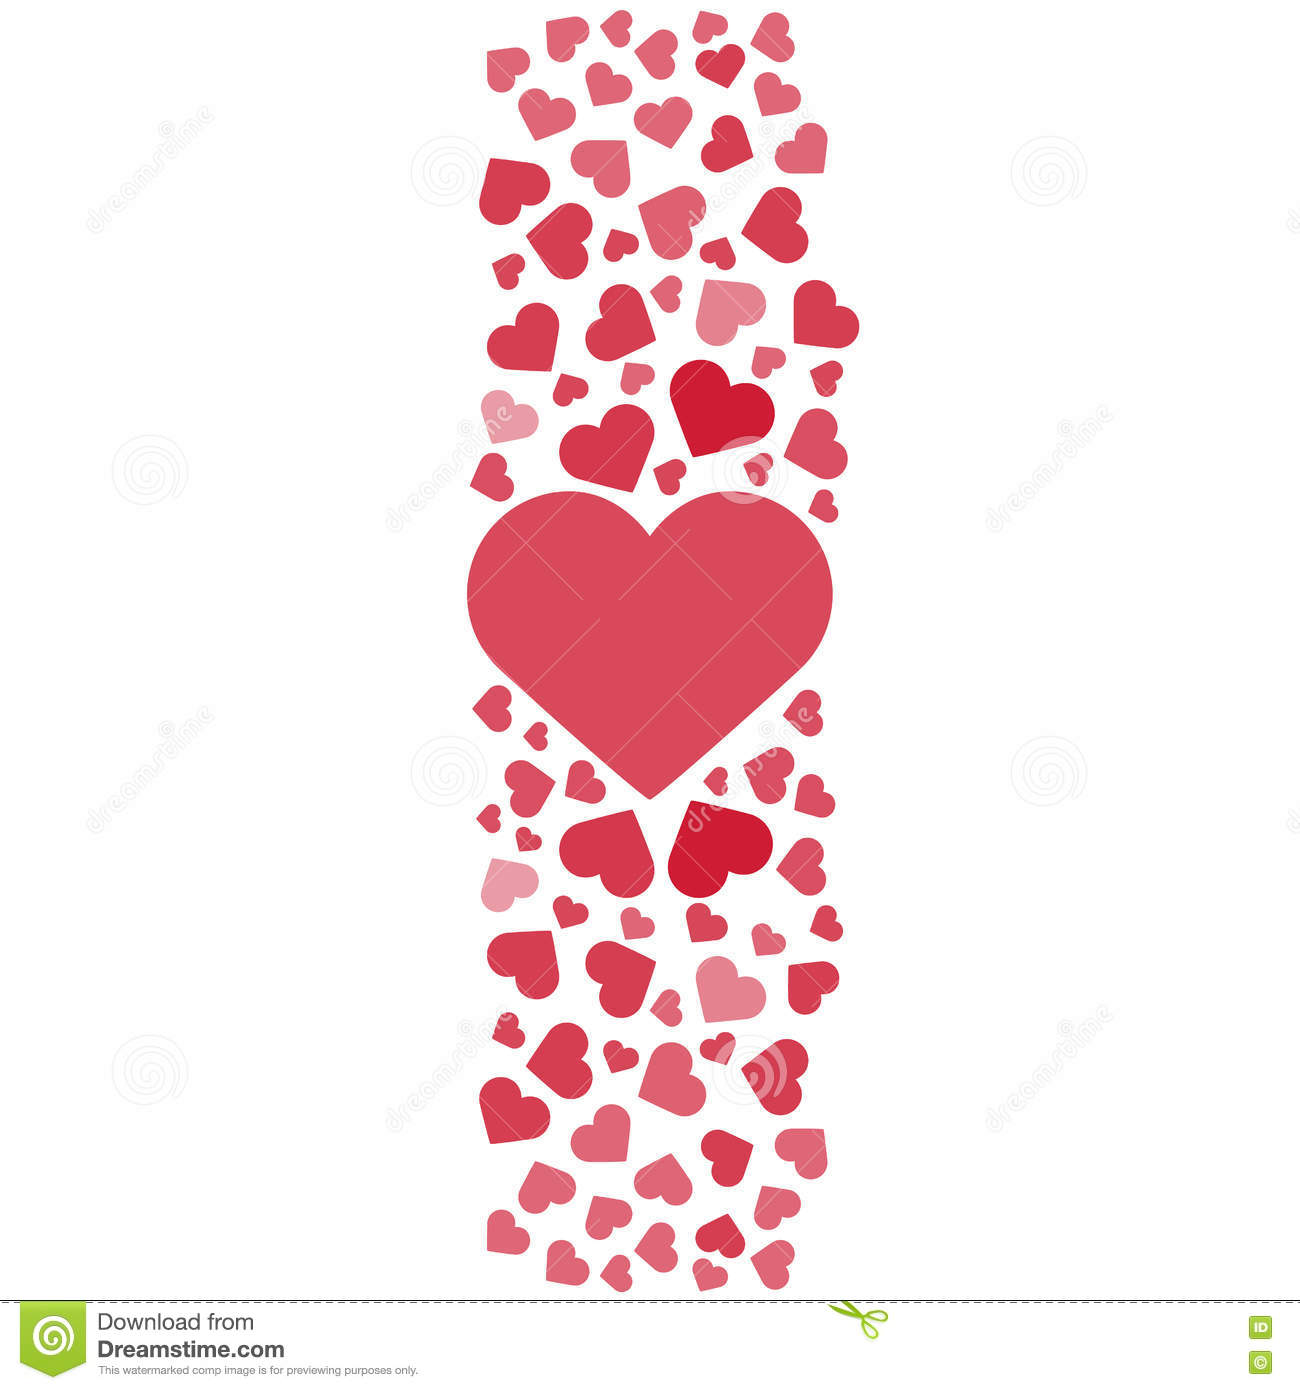 love story logo. vector illustration. love, hearts. valentines day